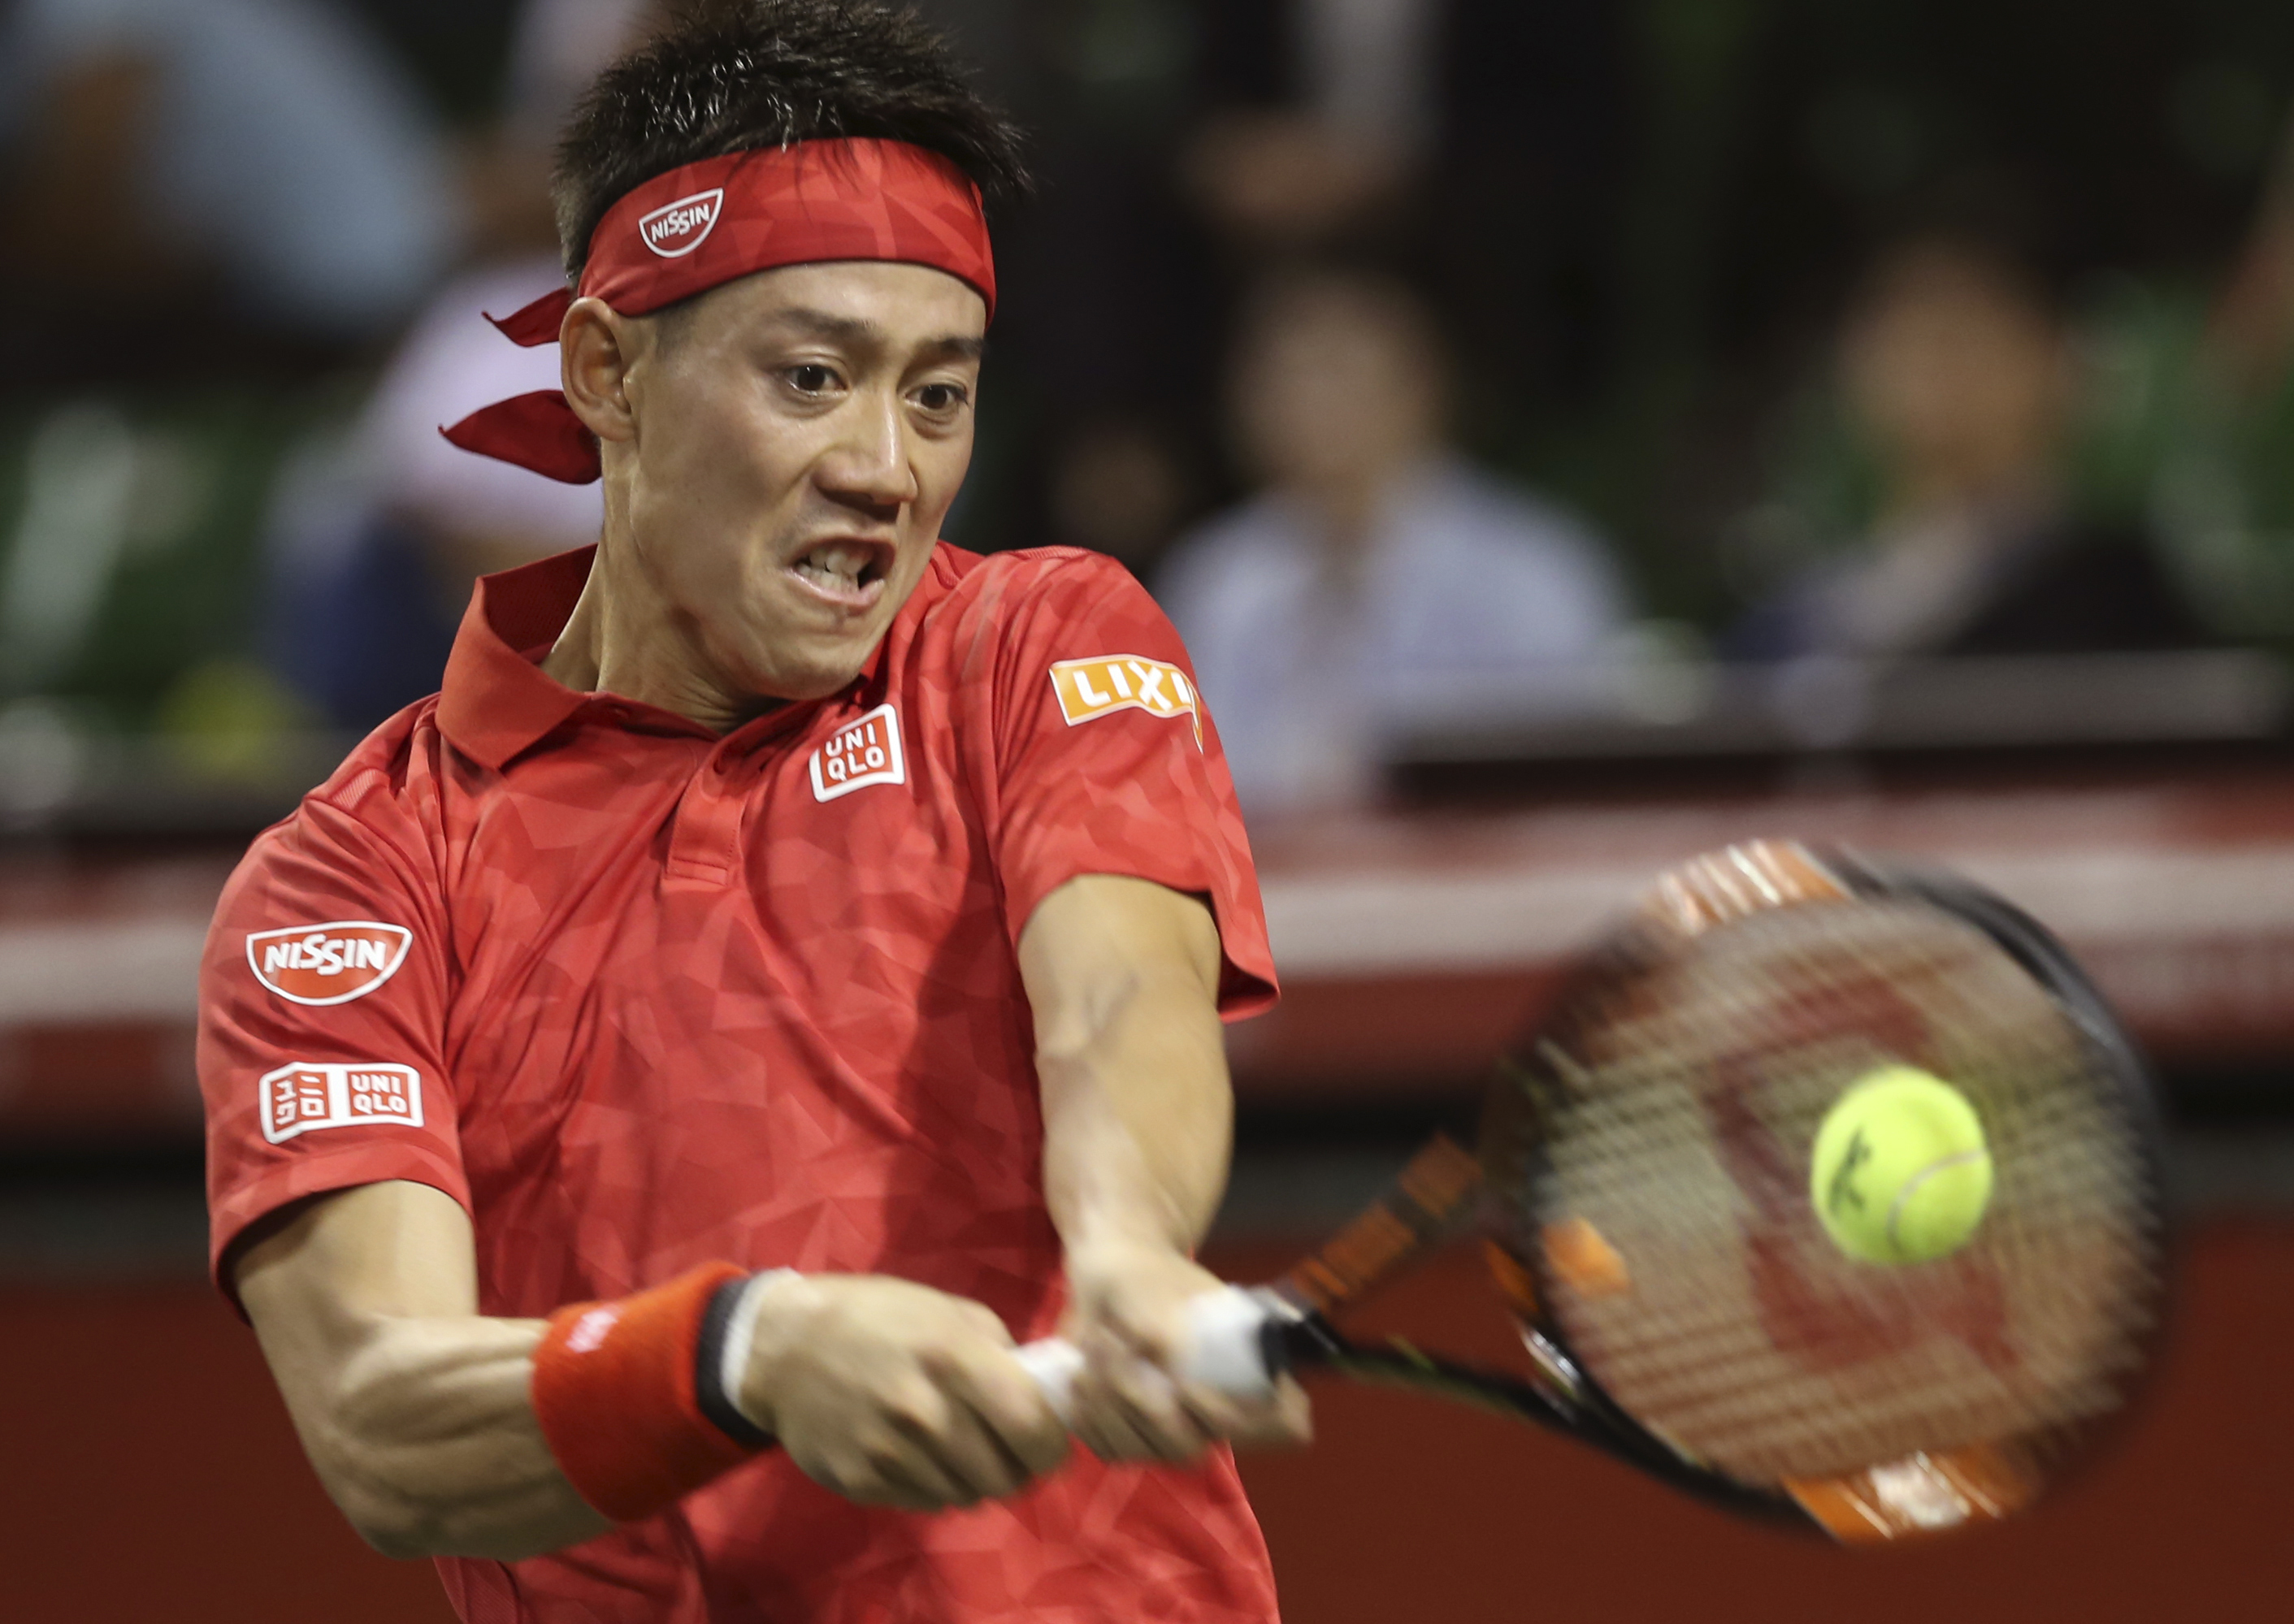 Japan's Kei Nishikori returns a shot against Donald Young of the United States during the first round match of Japan Open tennis championships in Tokyo, Monday, Oct. 3, 2016. (AP Photo/Koji Sasahara)